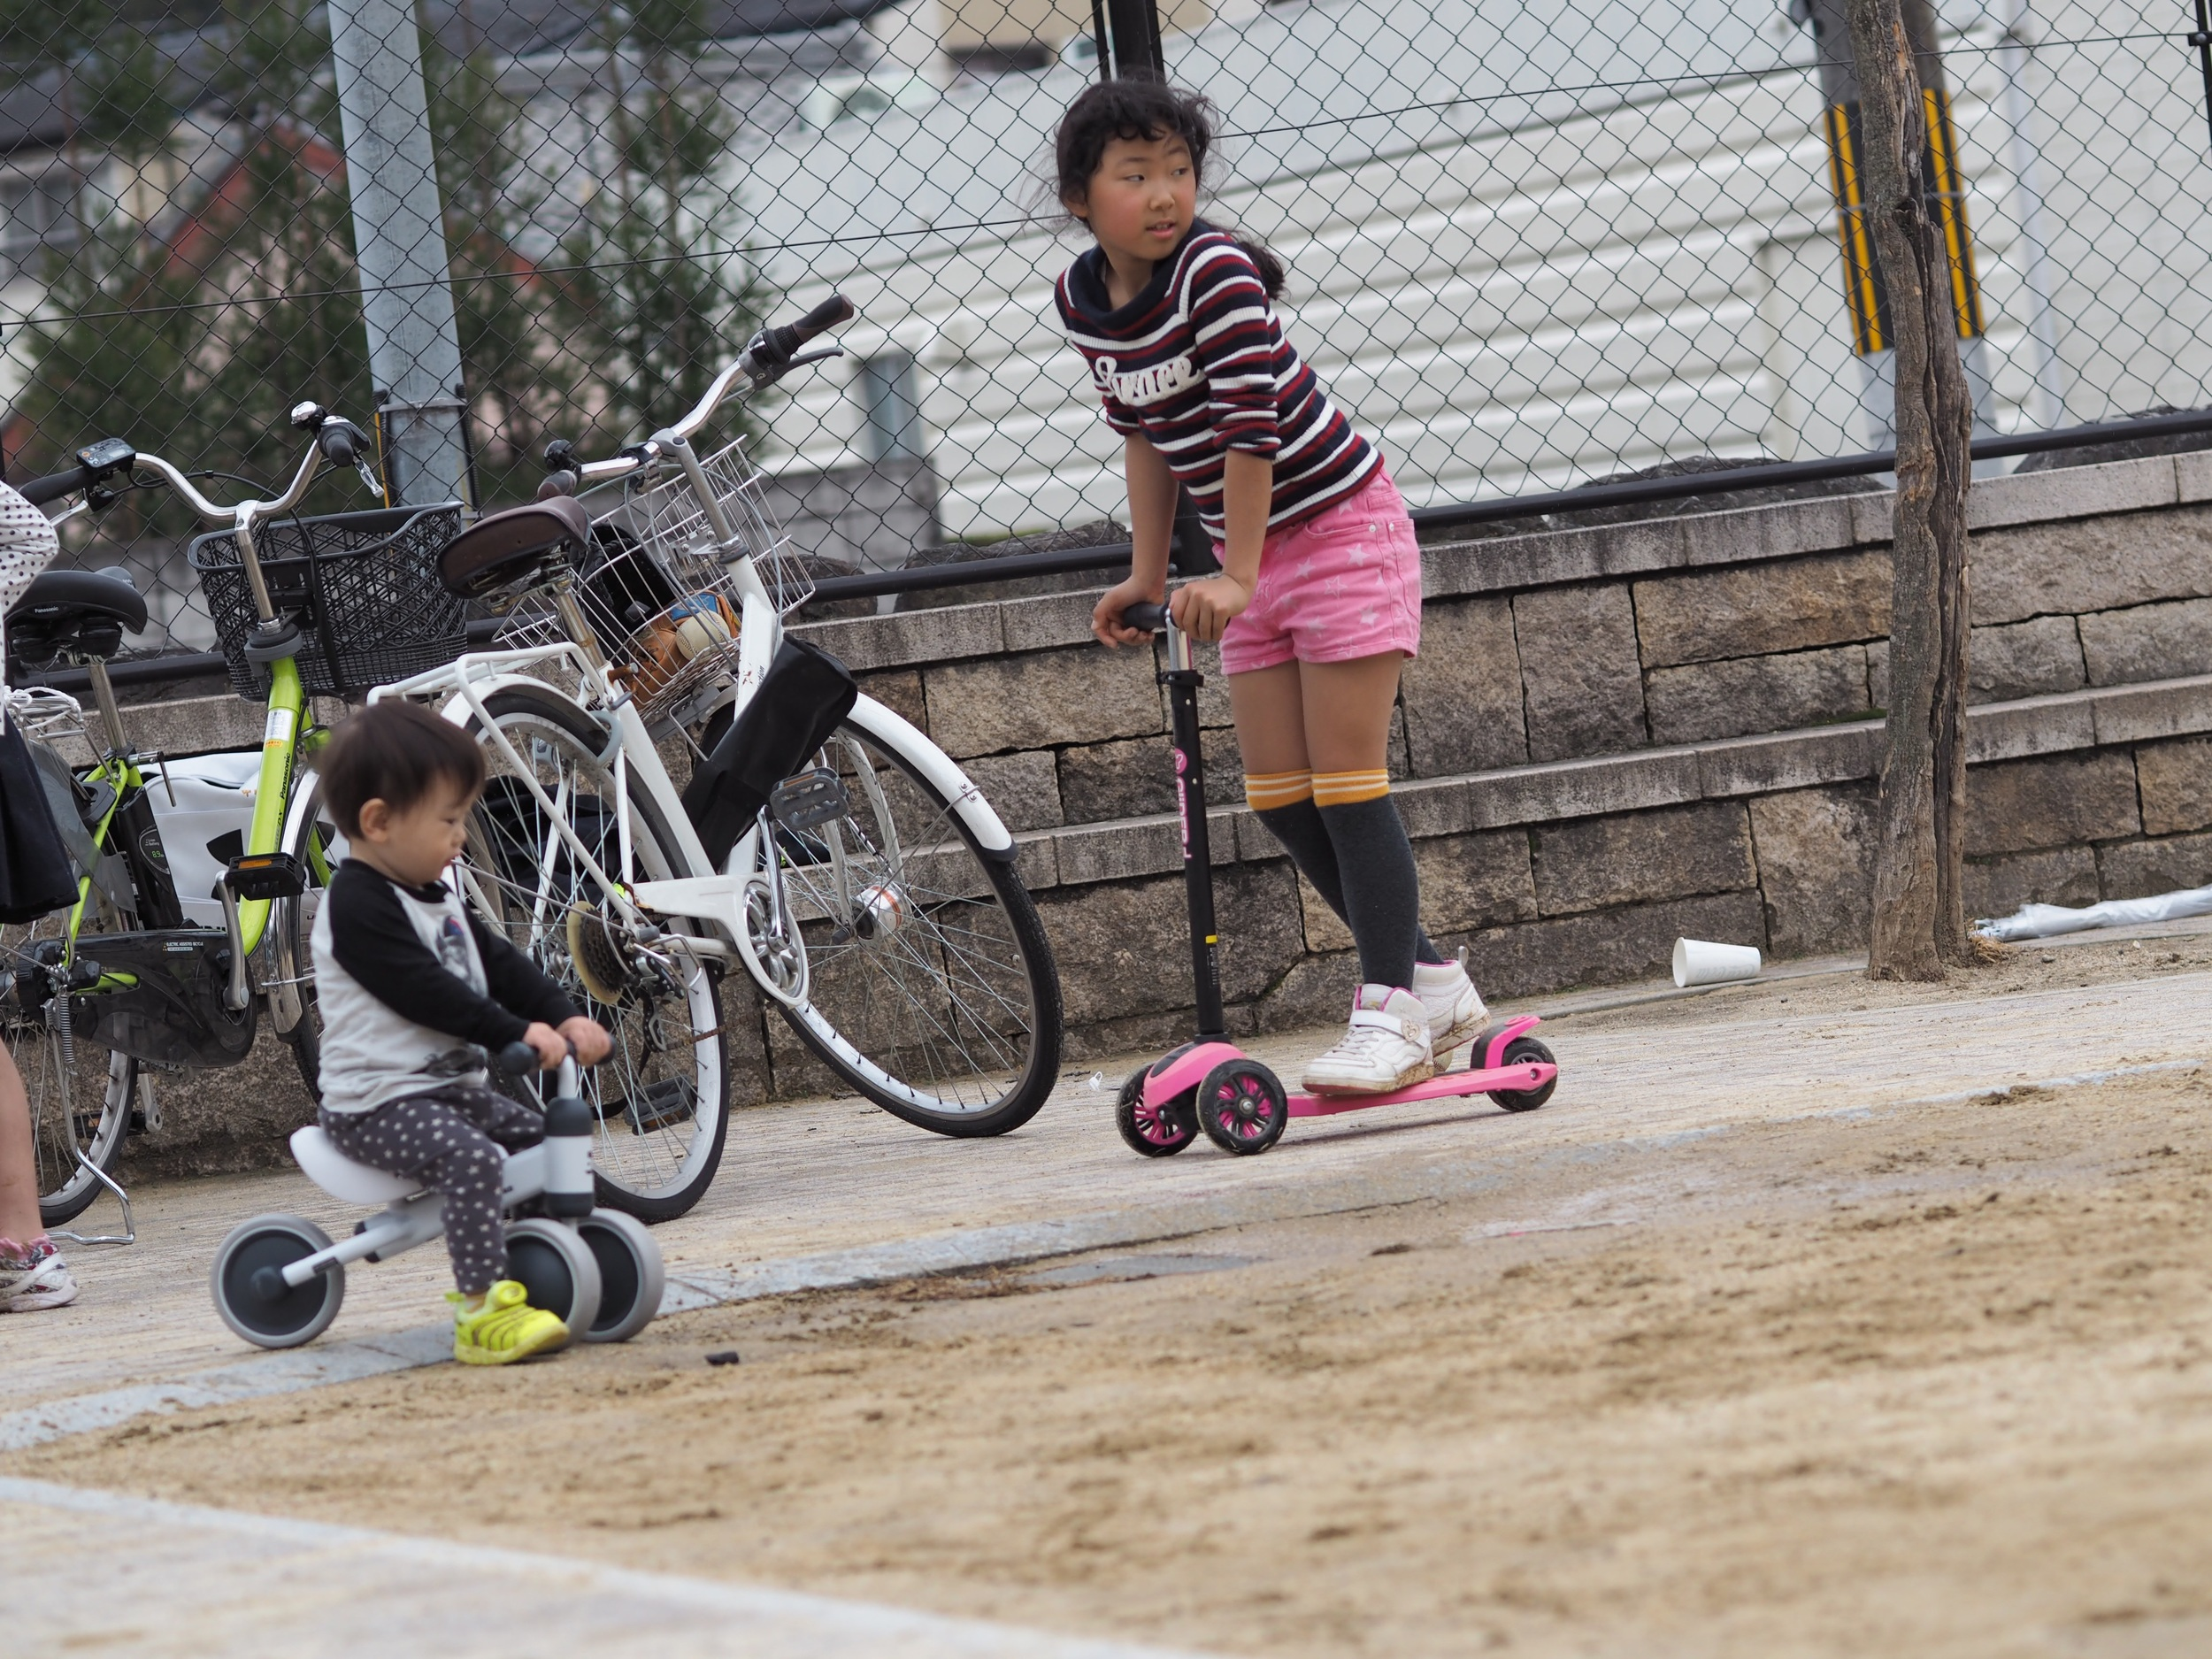 Kids playing in a small park